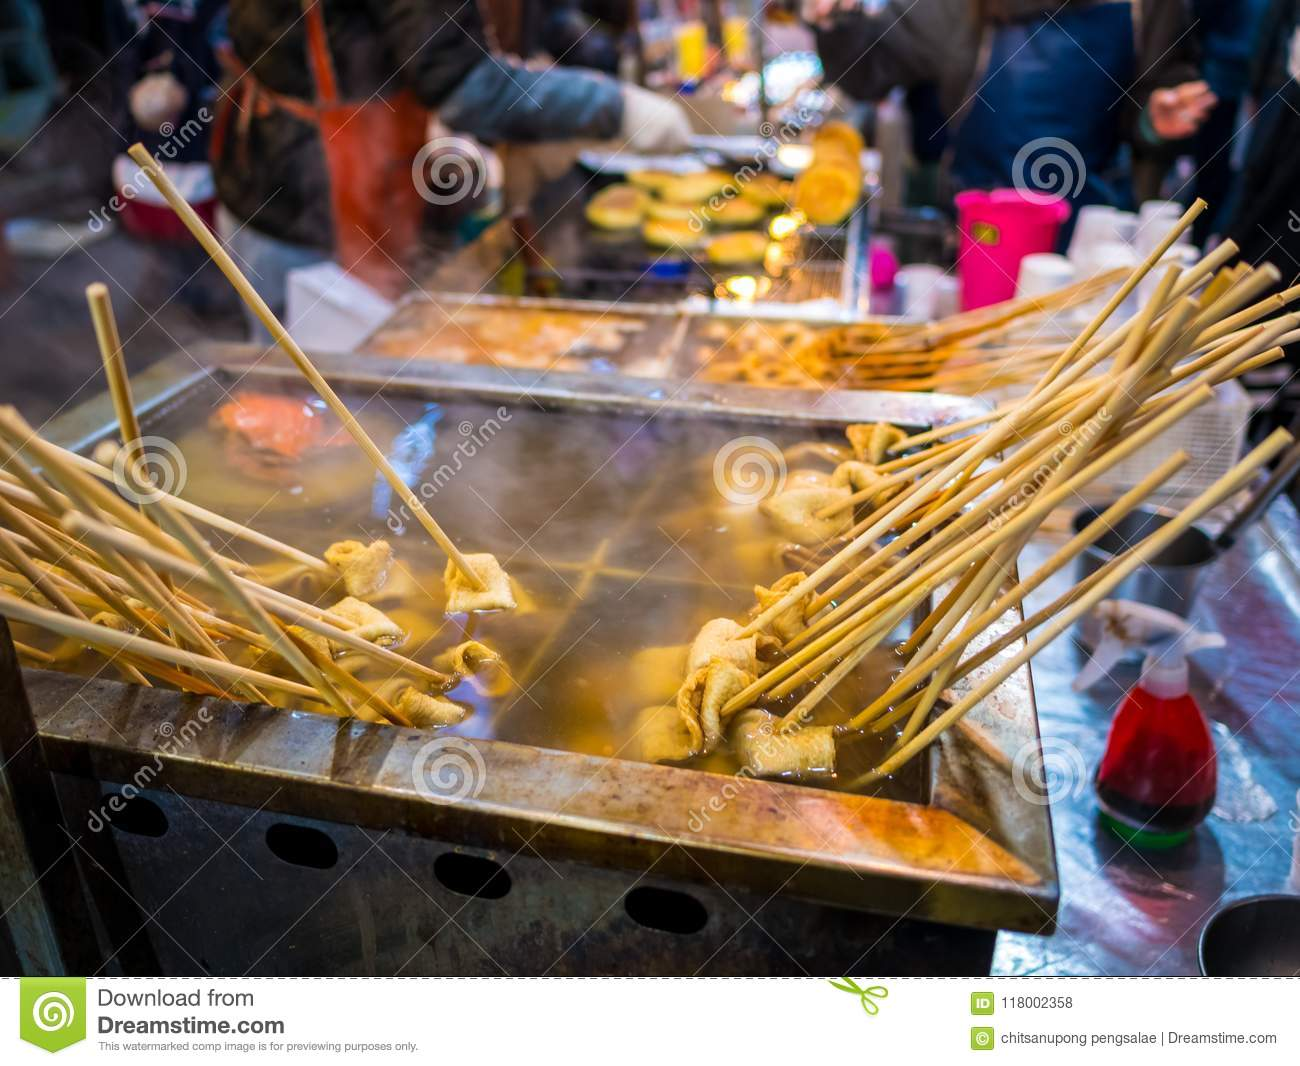 Fish Cake Traditional Korean Food In Local Market Street Food The